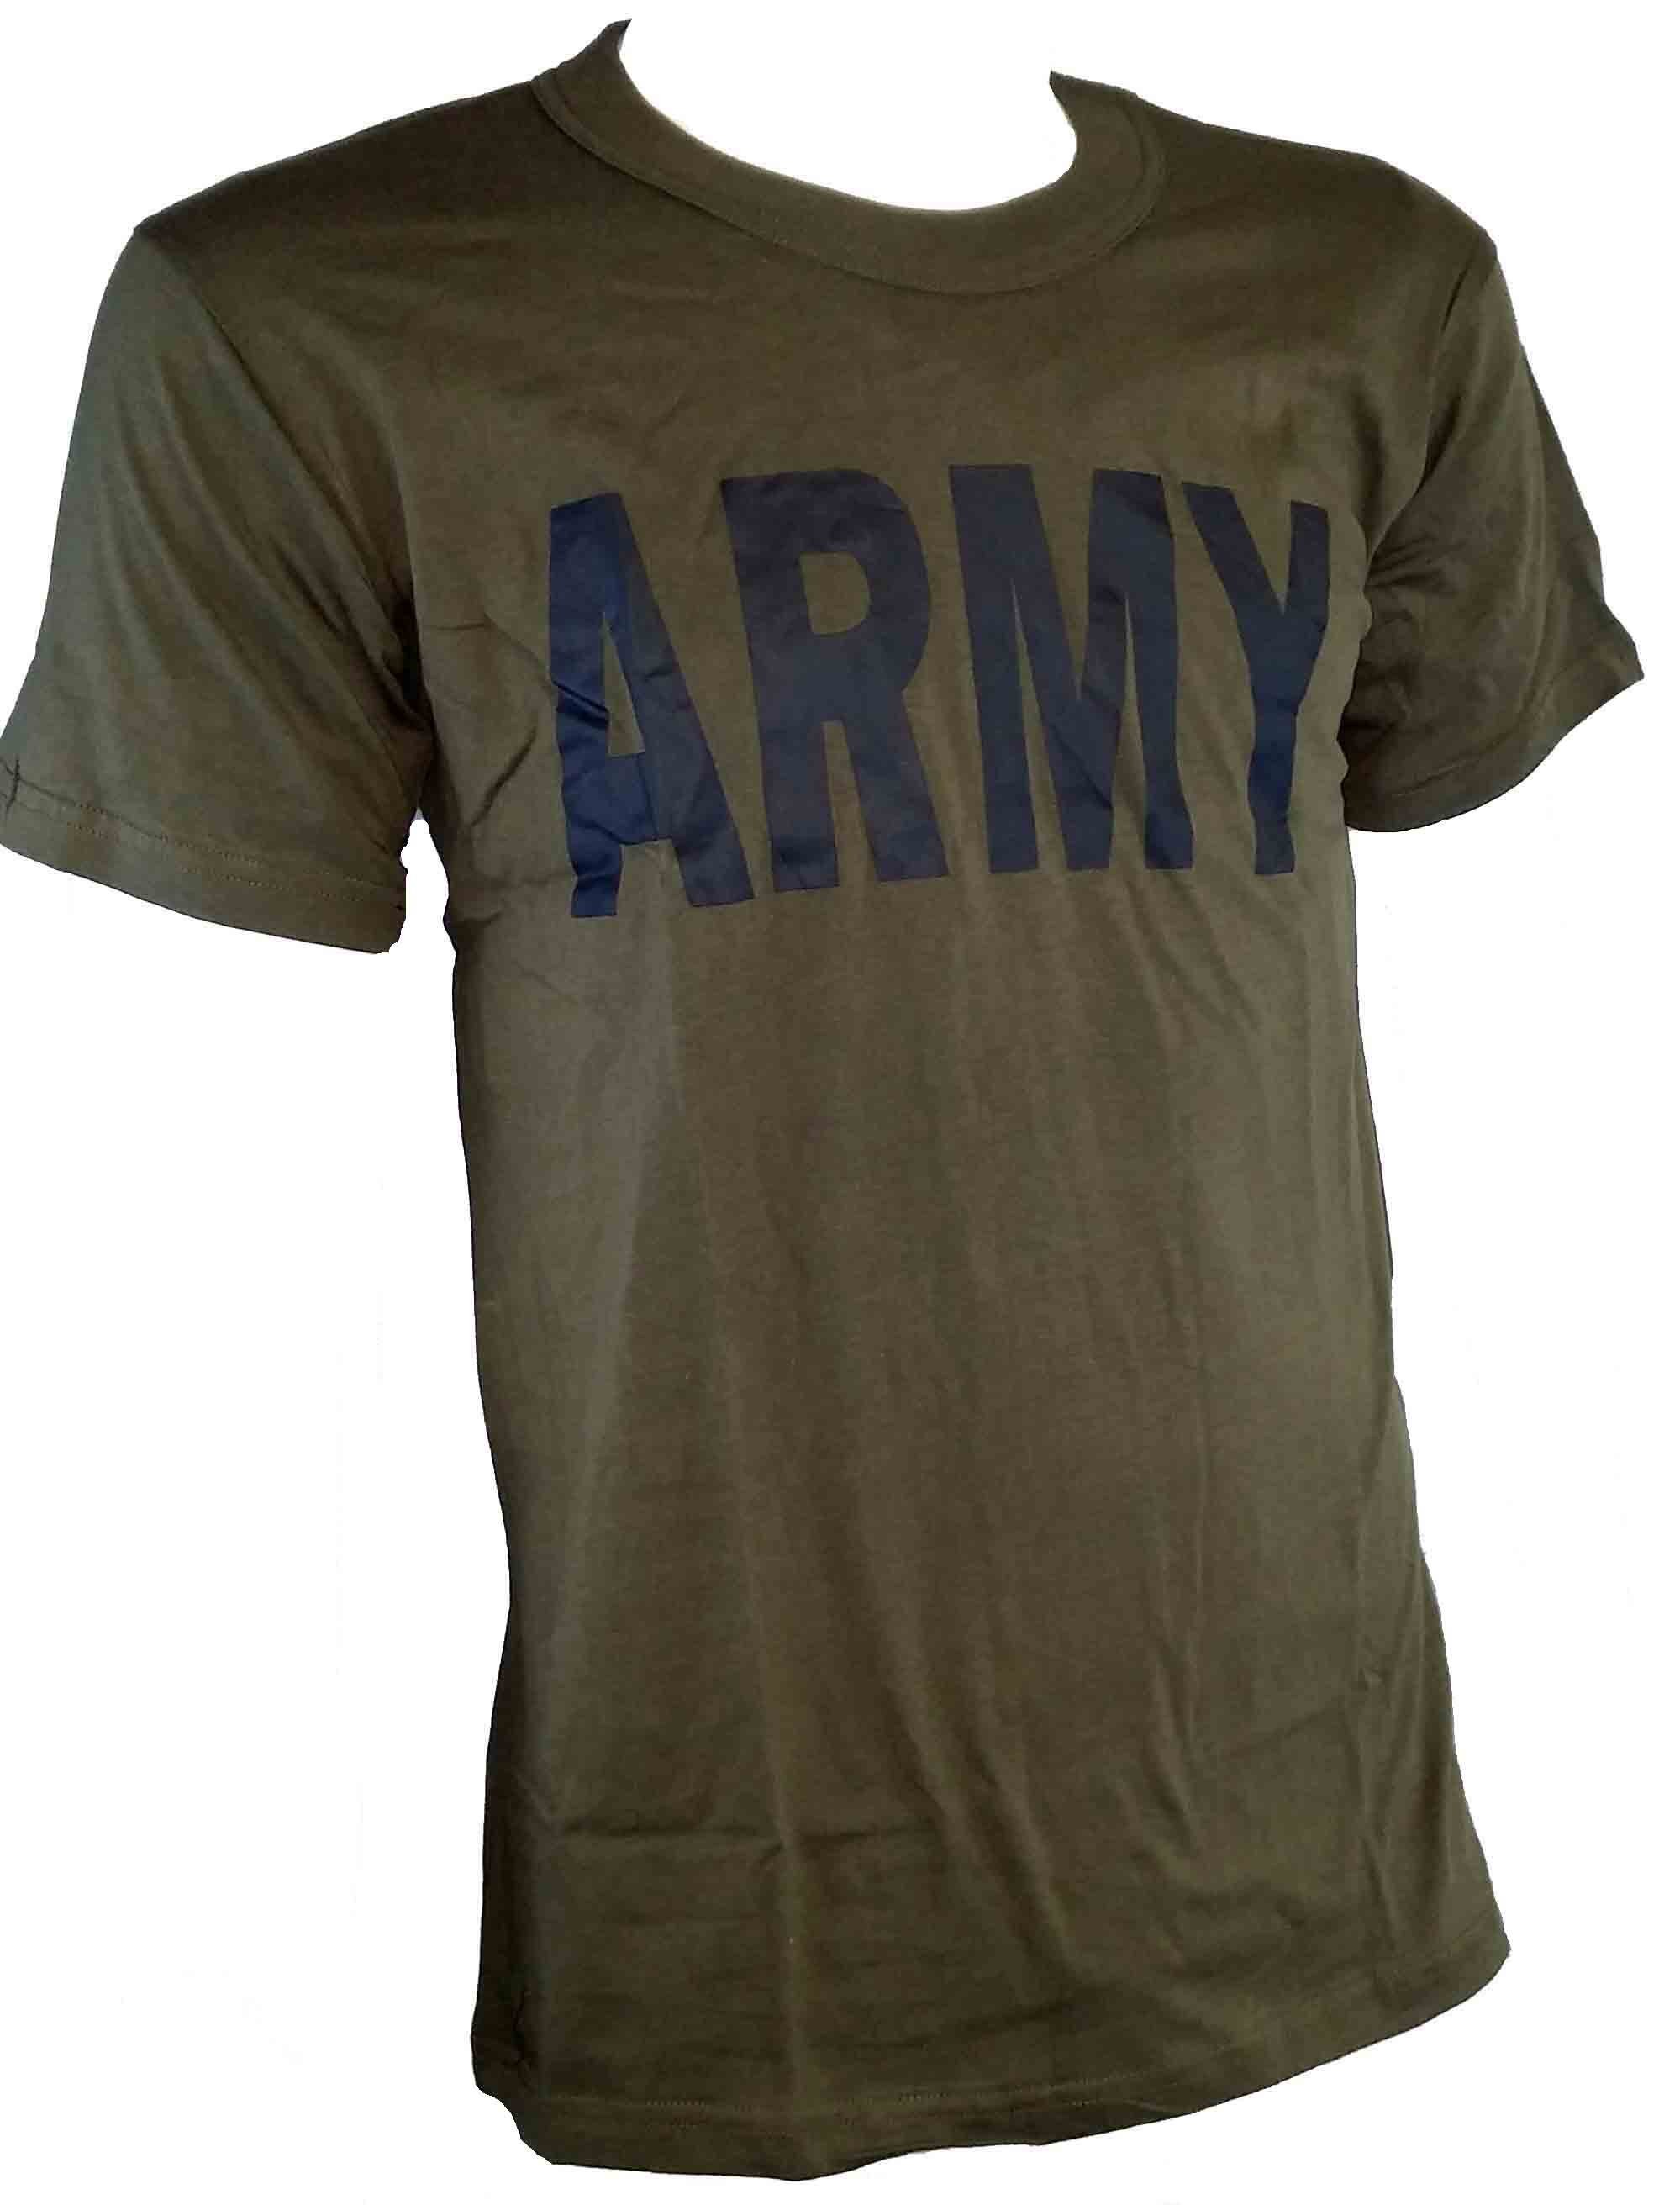 OLIVE DRAB T-SHIRT WITH ARMY LOGO